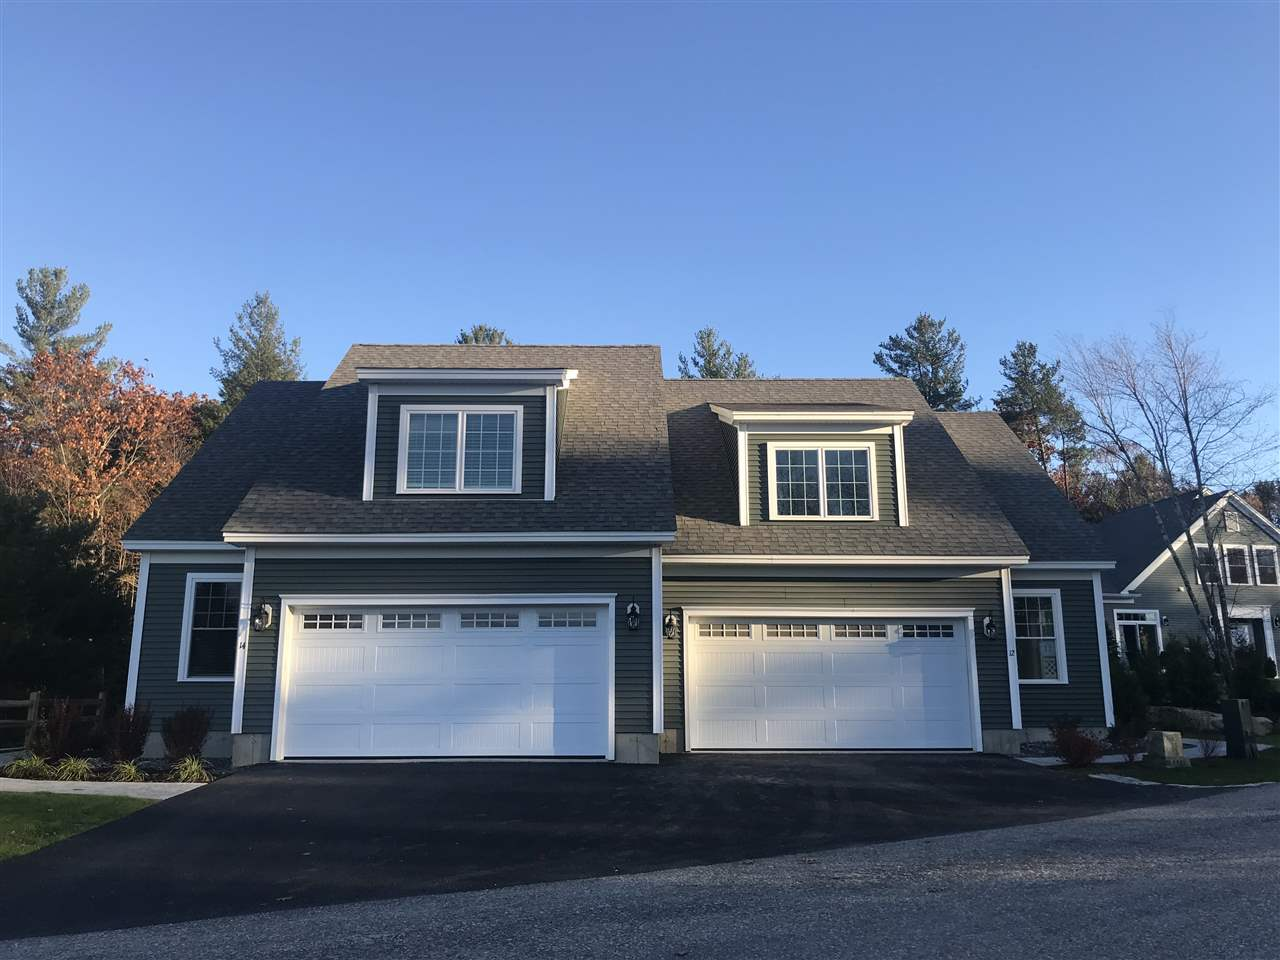 Photo of 12 Green Road Newmarket NH 03857